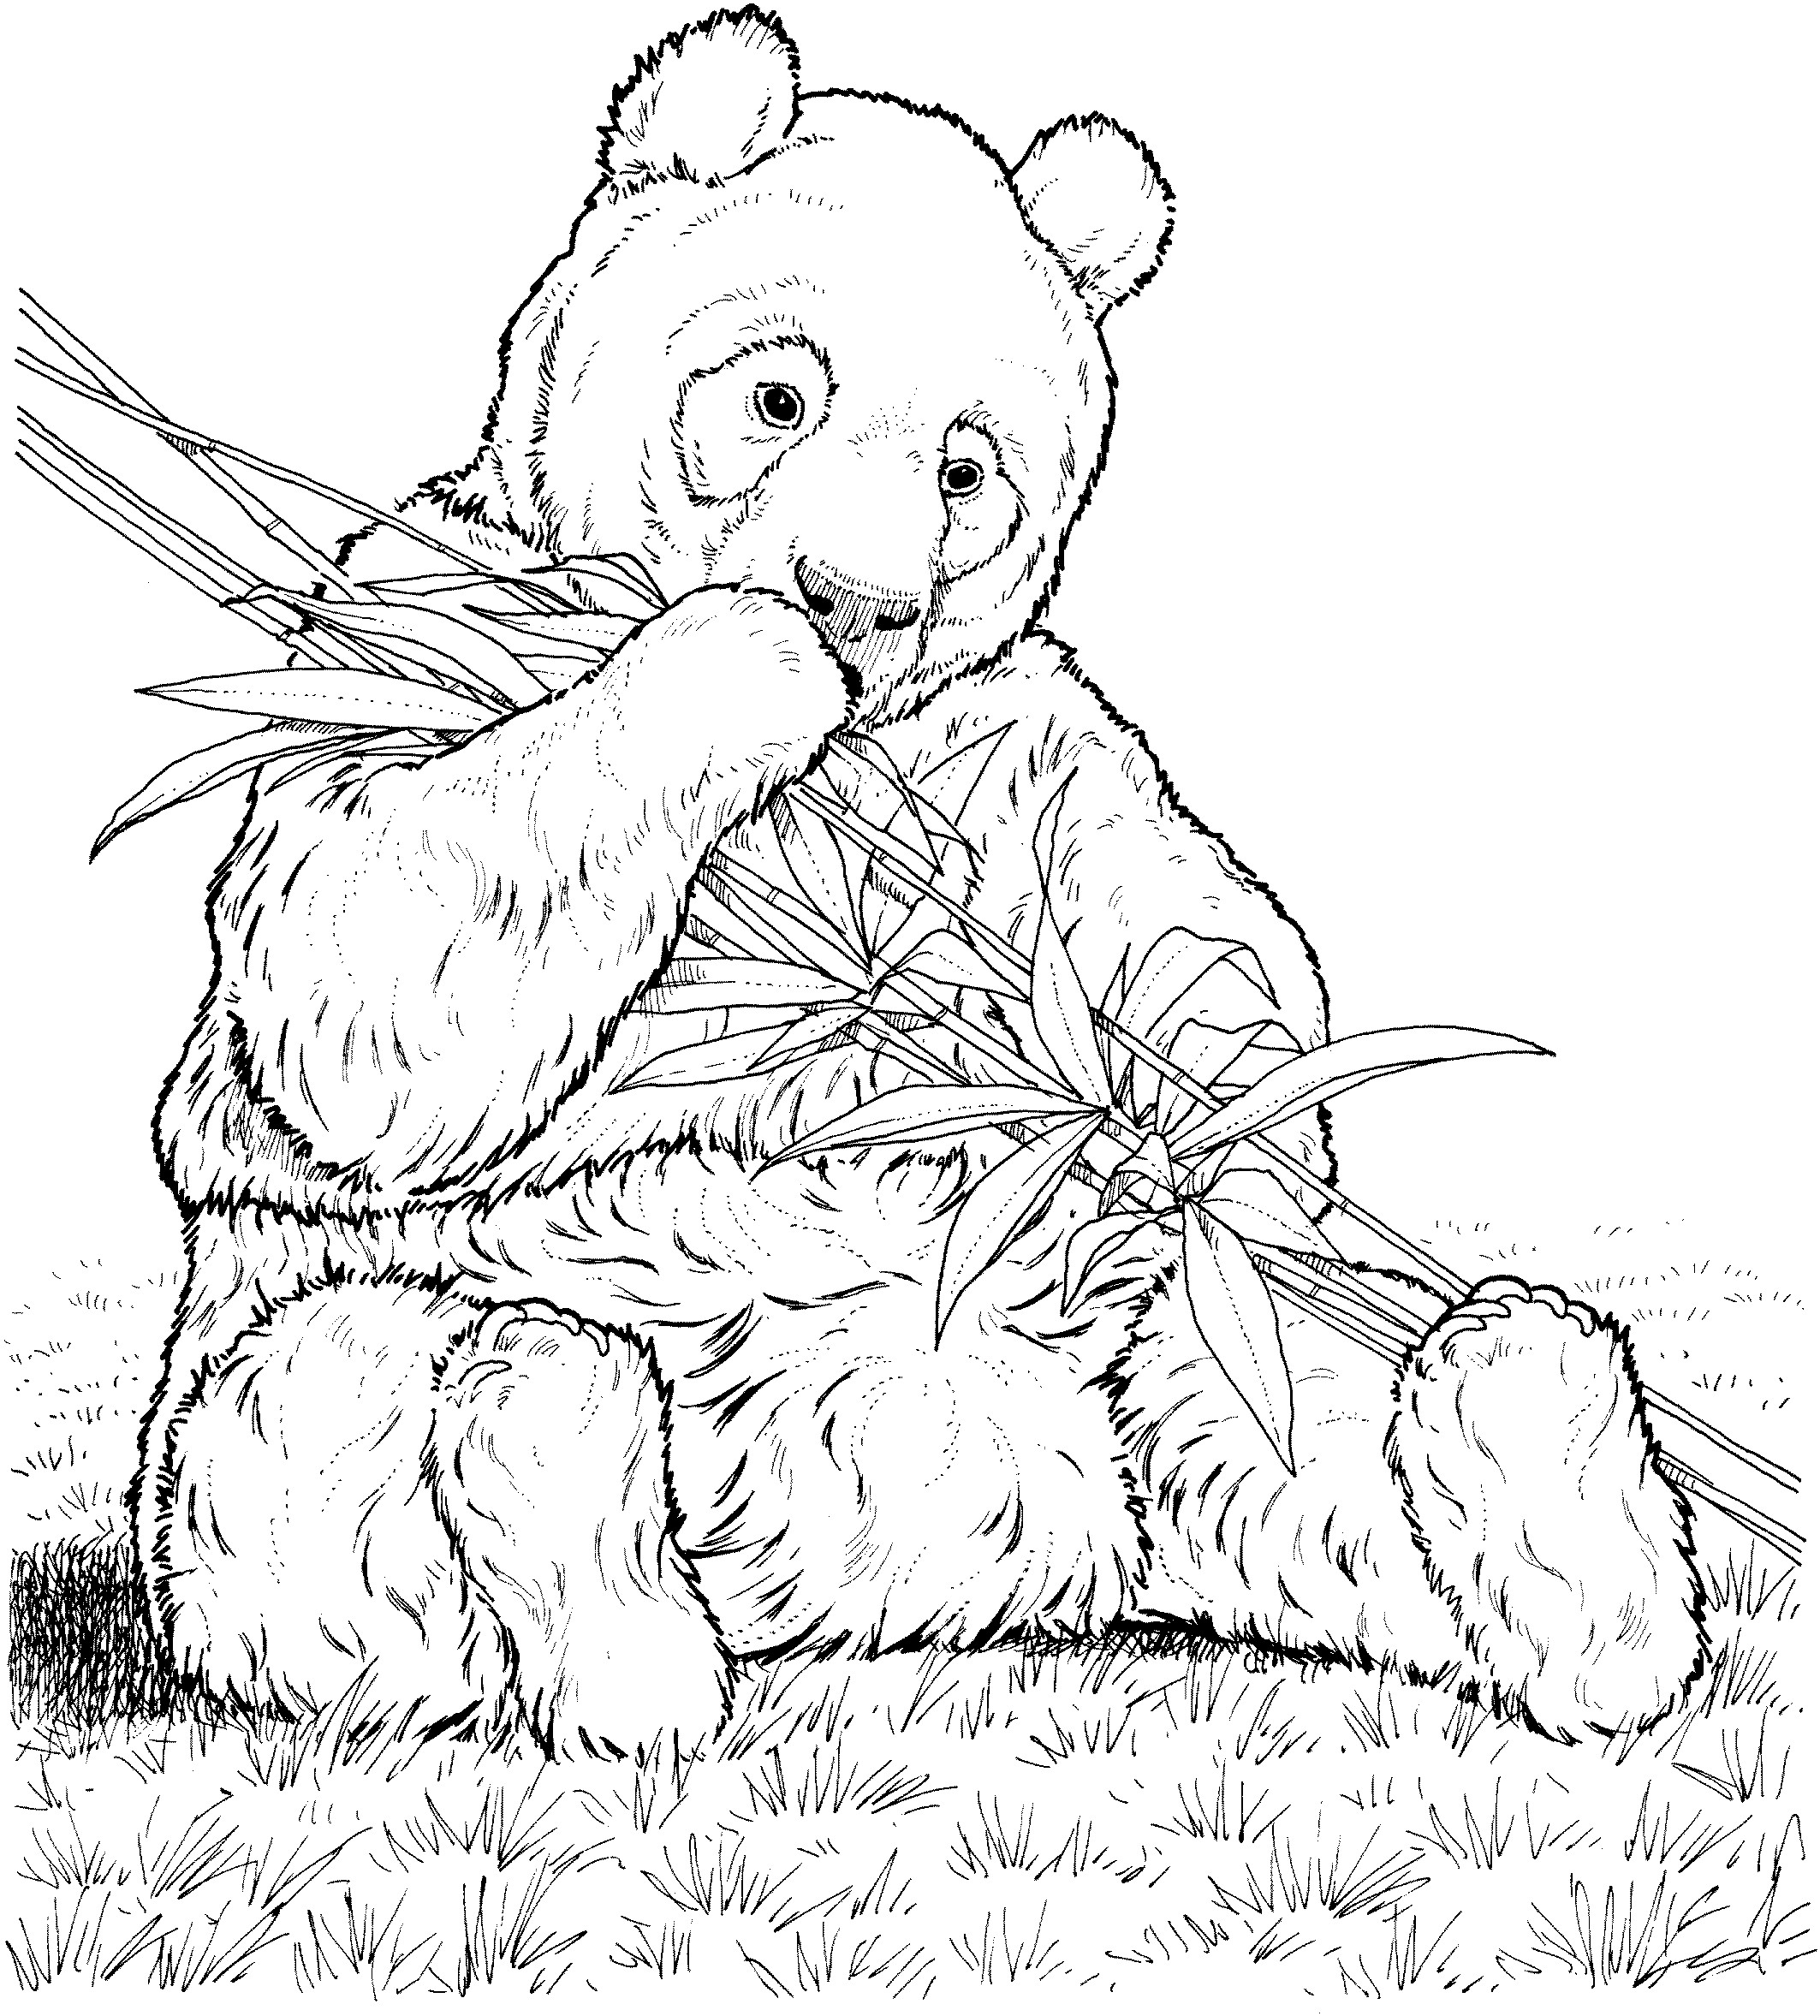 Realistic Bear Drawing at GetDrawings.com | Free for personal use ...